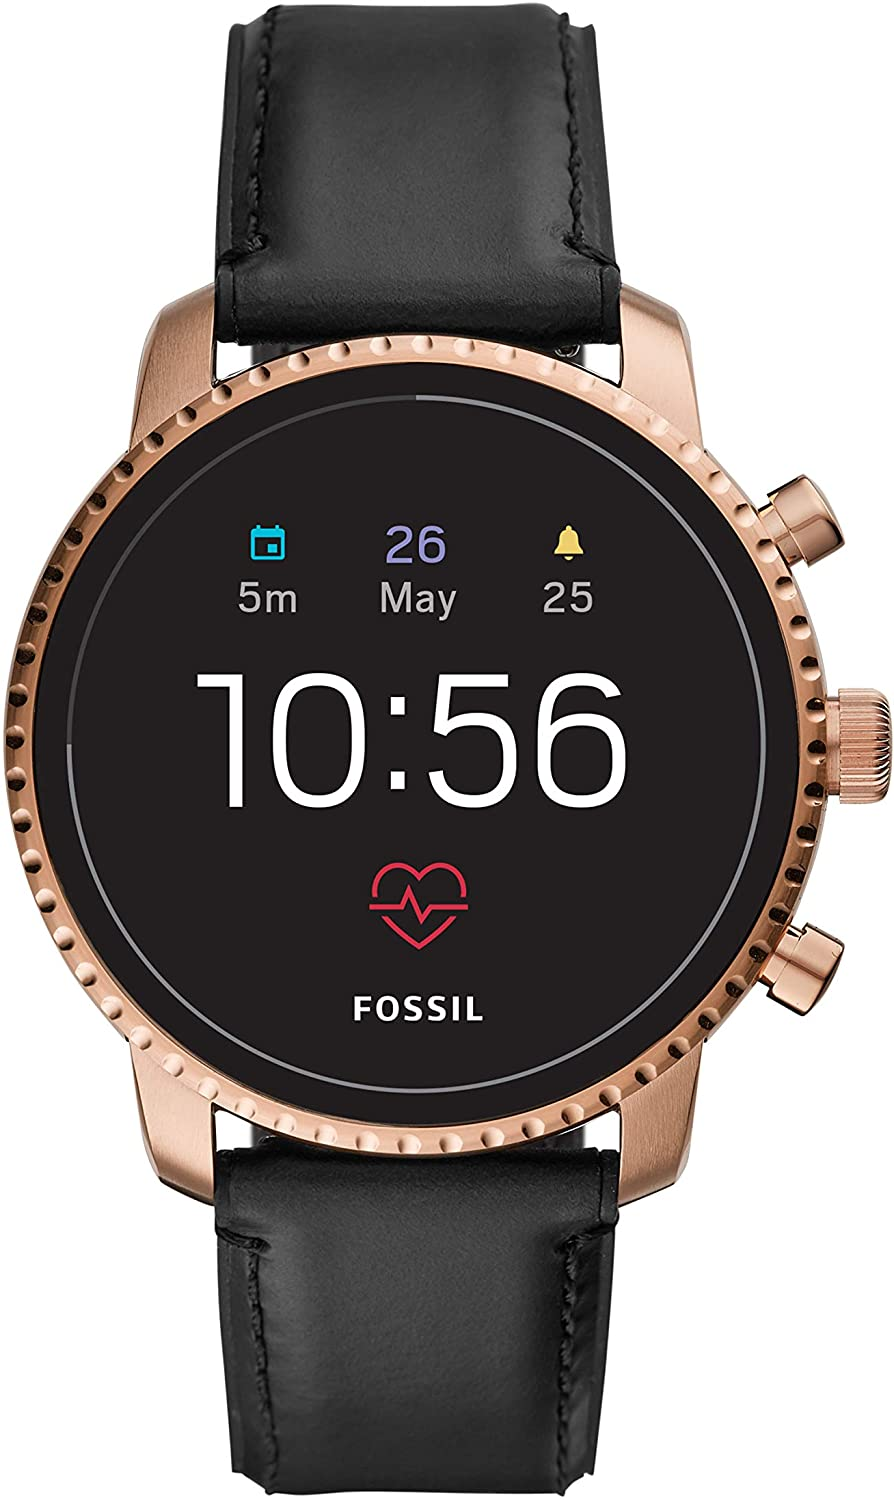 Fossil Men's Gen 4 Explorist HR Stainless Steel Touchscreen Smartwatch with Heart Rate, GPS, NFC, and Smartphone Notifications